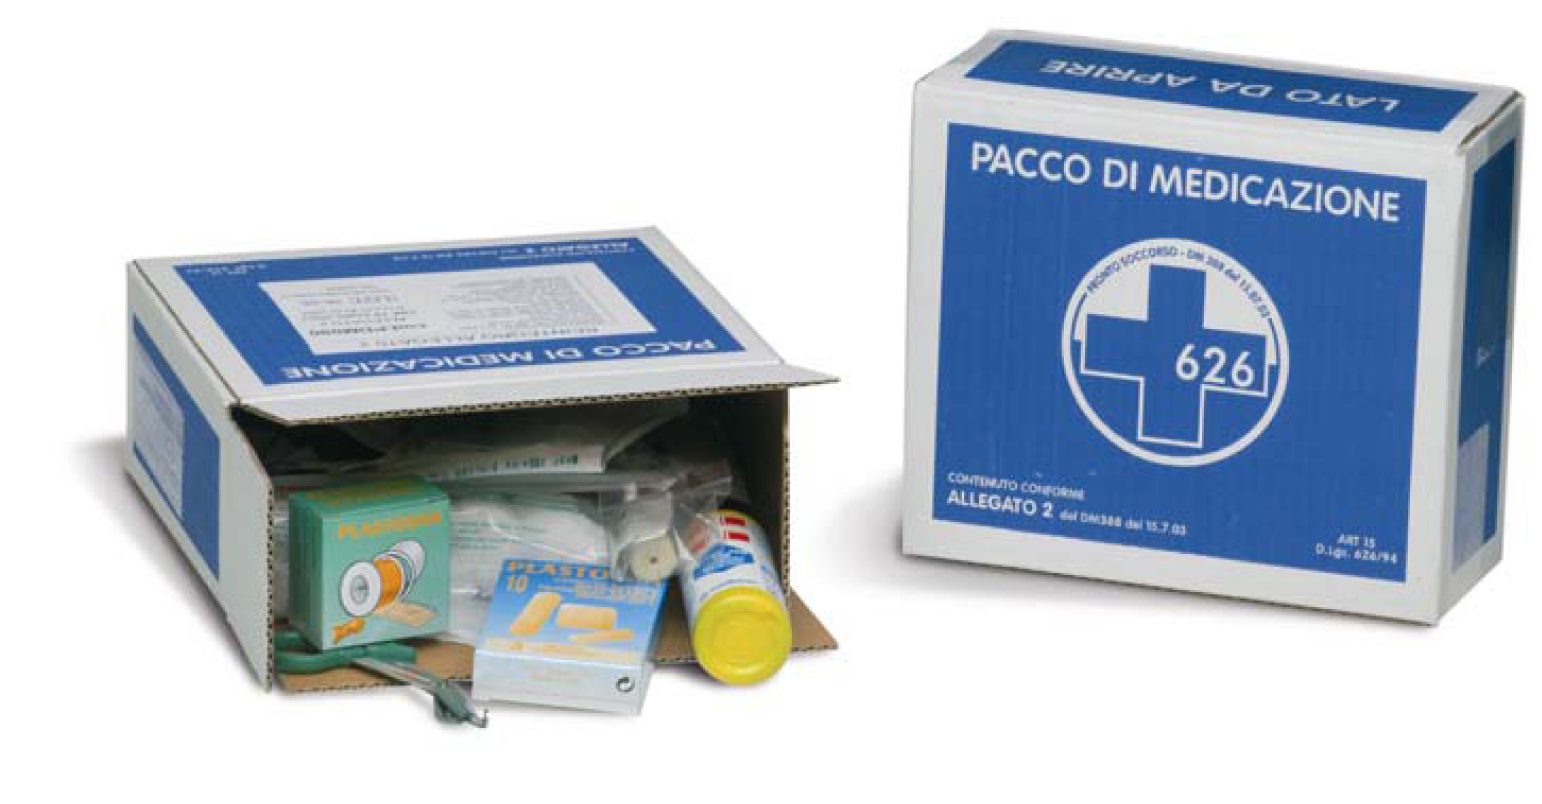 PACCO REINTEGRO BASE ALL 2 DM 3889 15.7.03